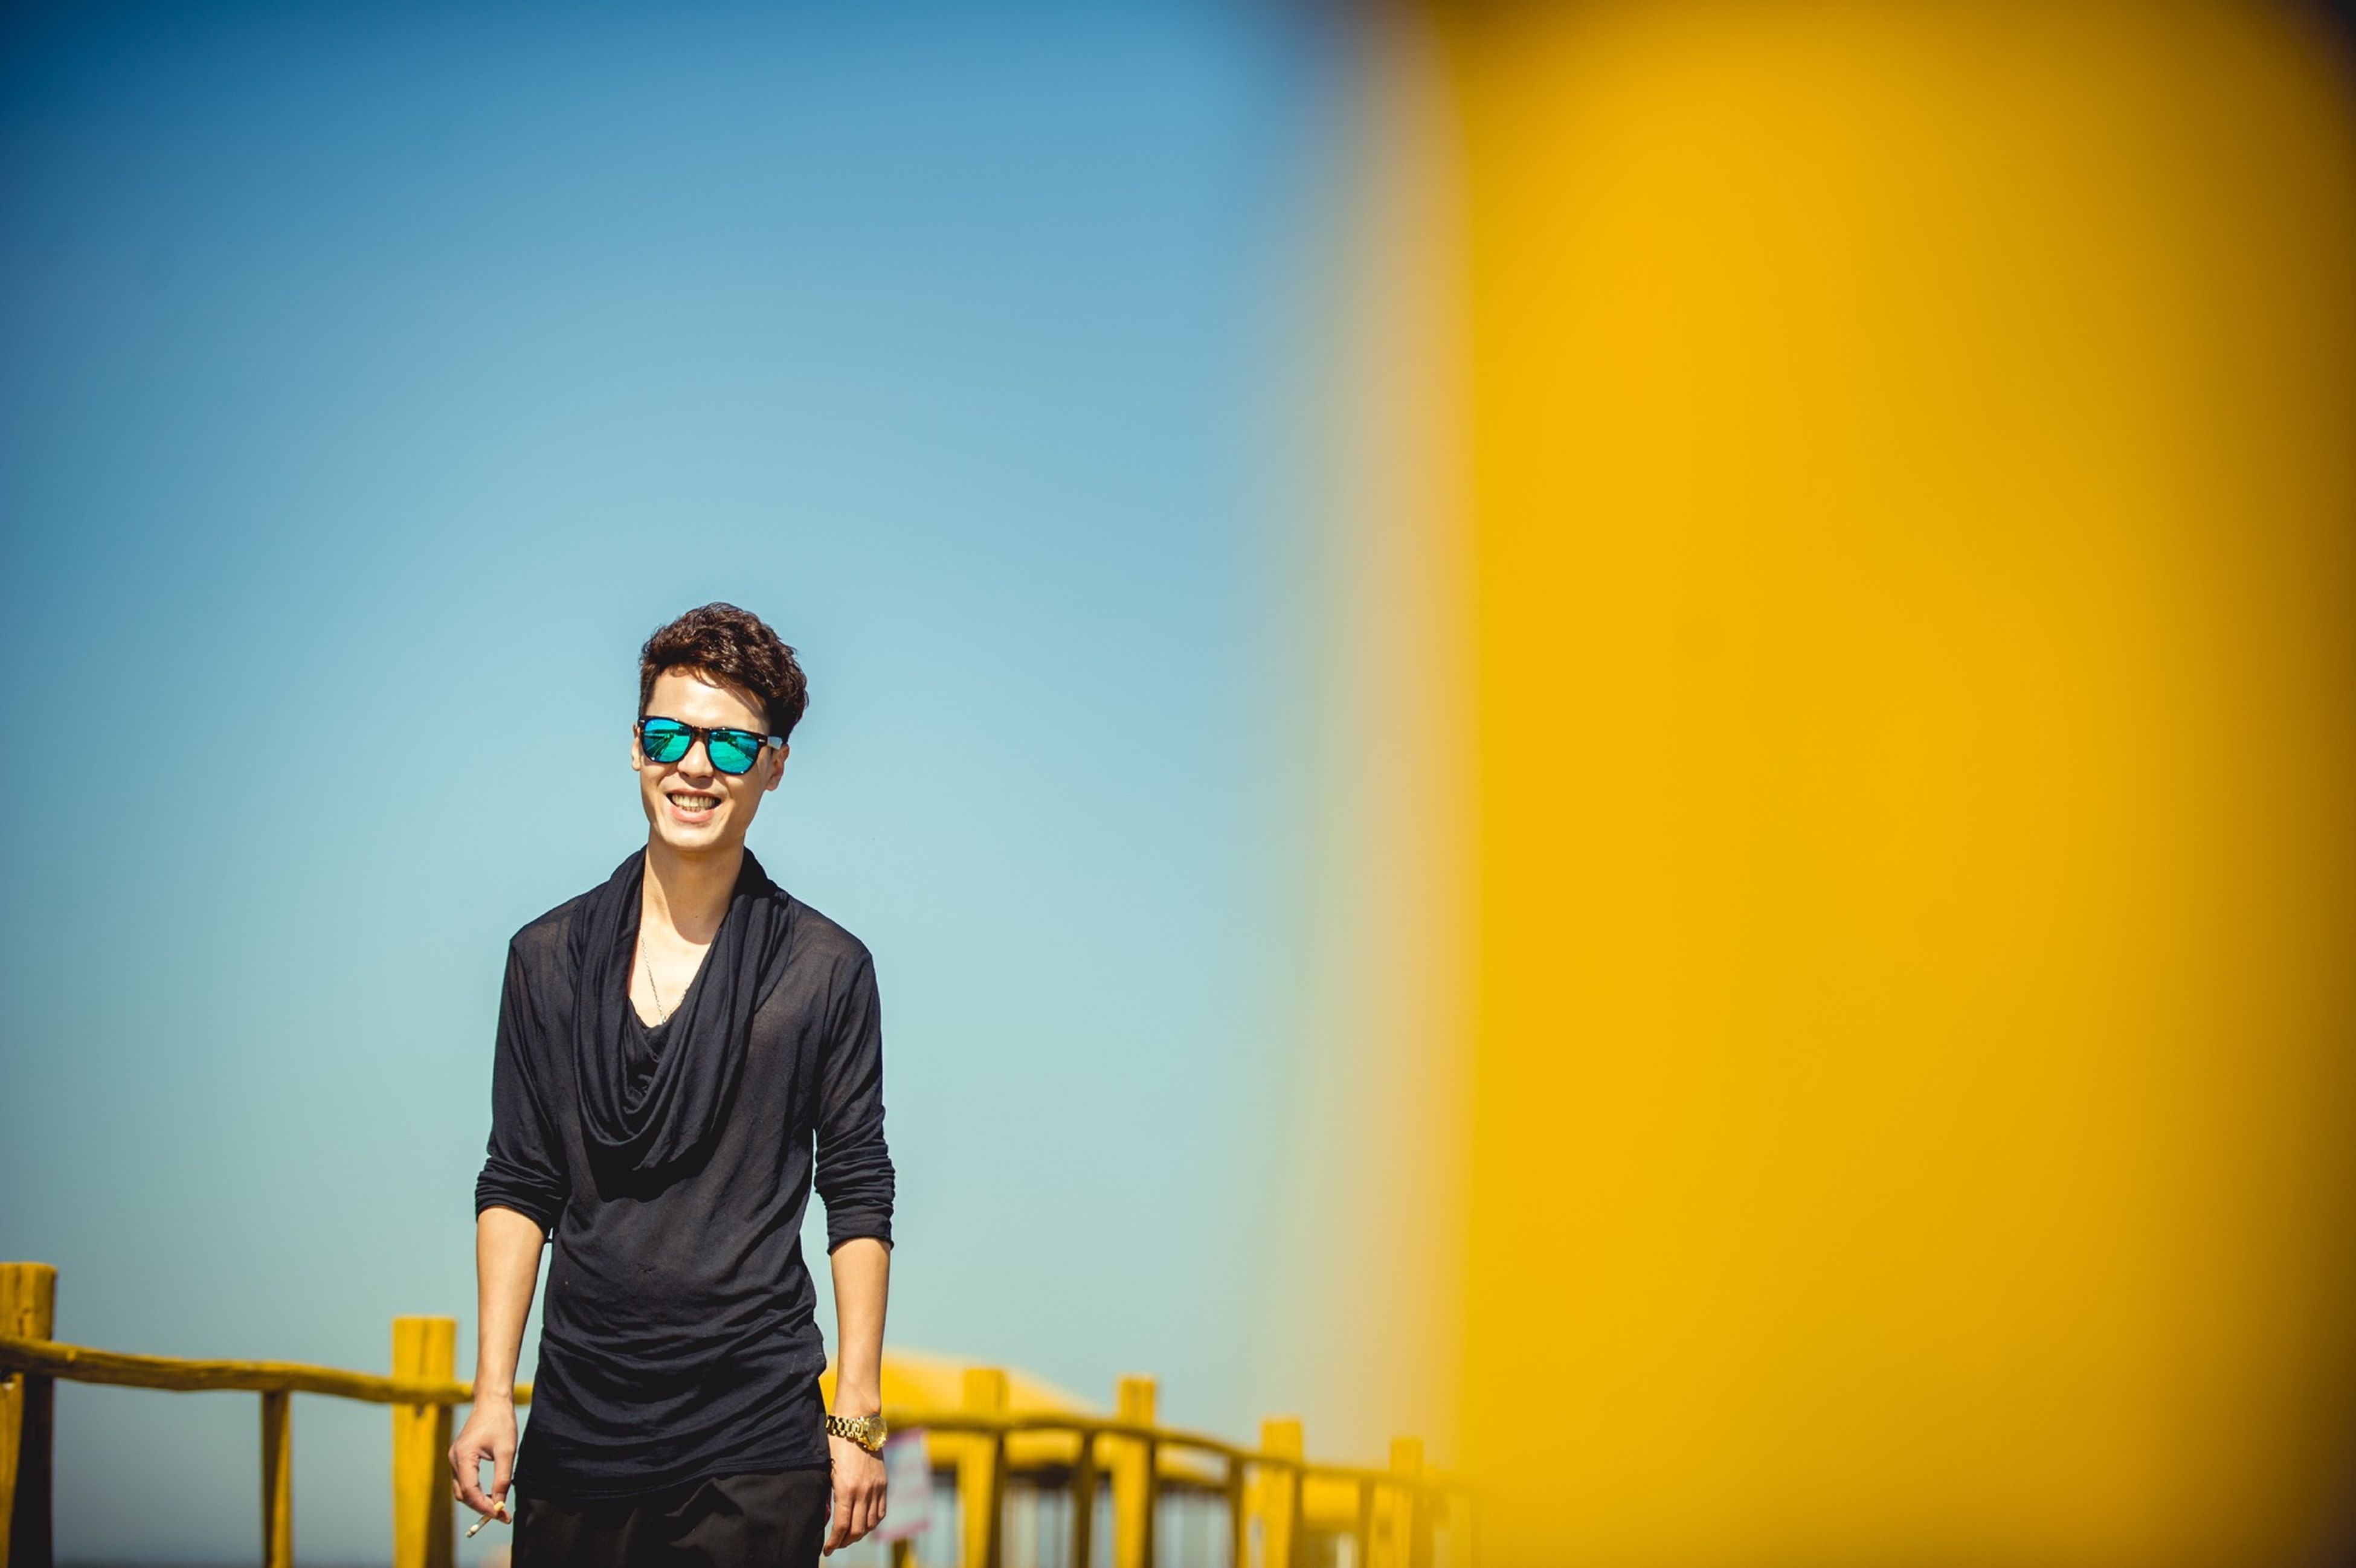 lifestyles, standing, leisure activity, young men, casual clothing, young adult, waist up, person, three quarter length, copy space, front view, portrait, looking at camera, clear sky, blue, sky, sunglasses, sunset